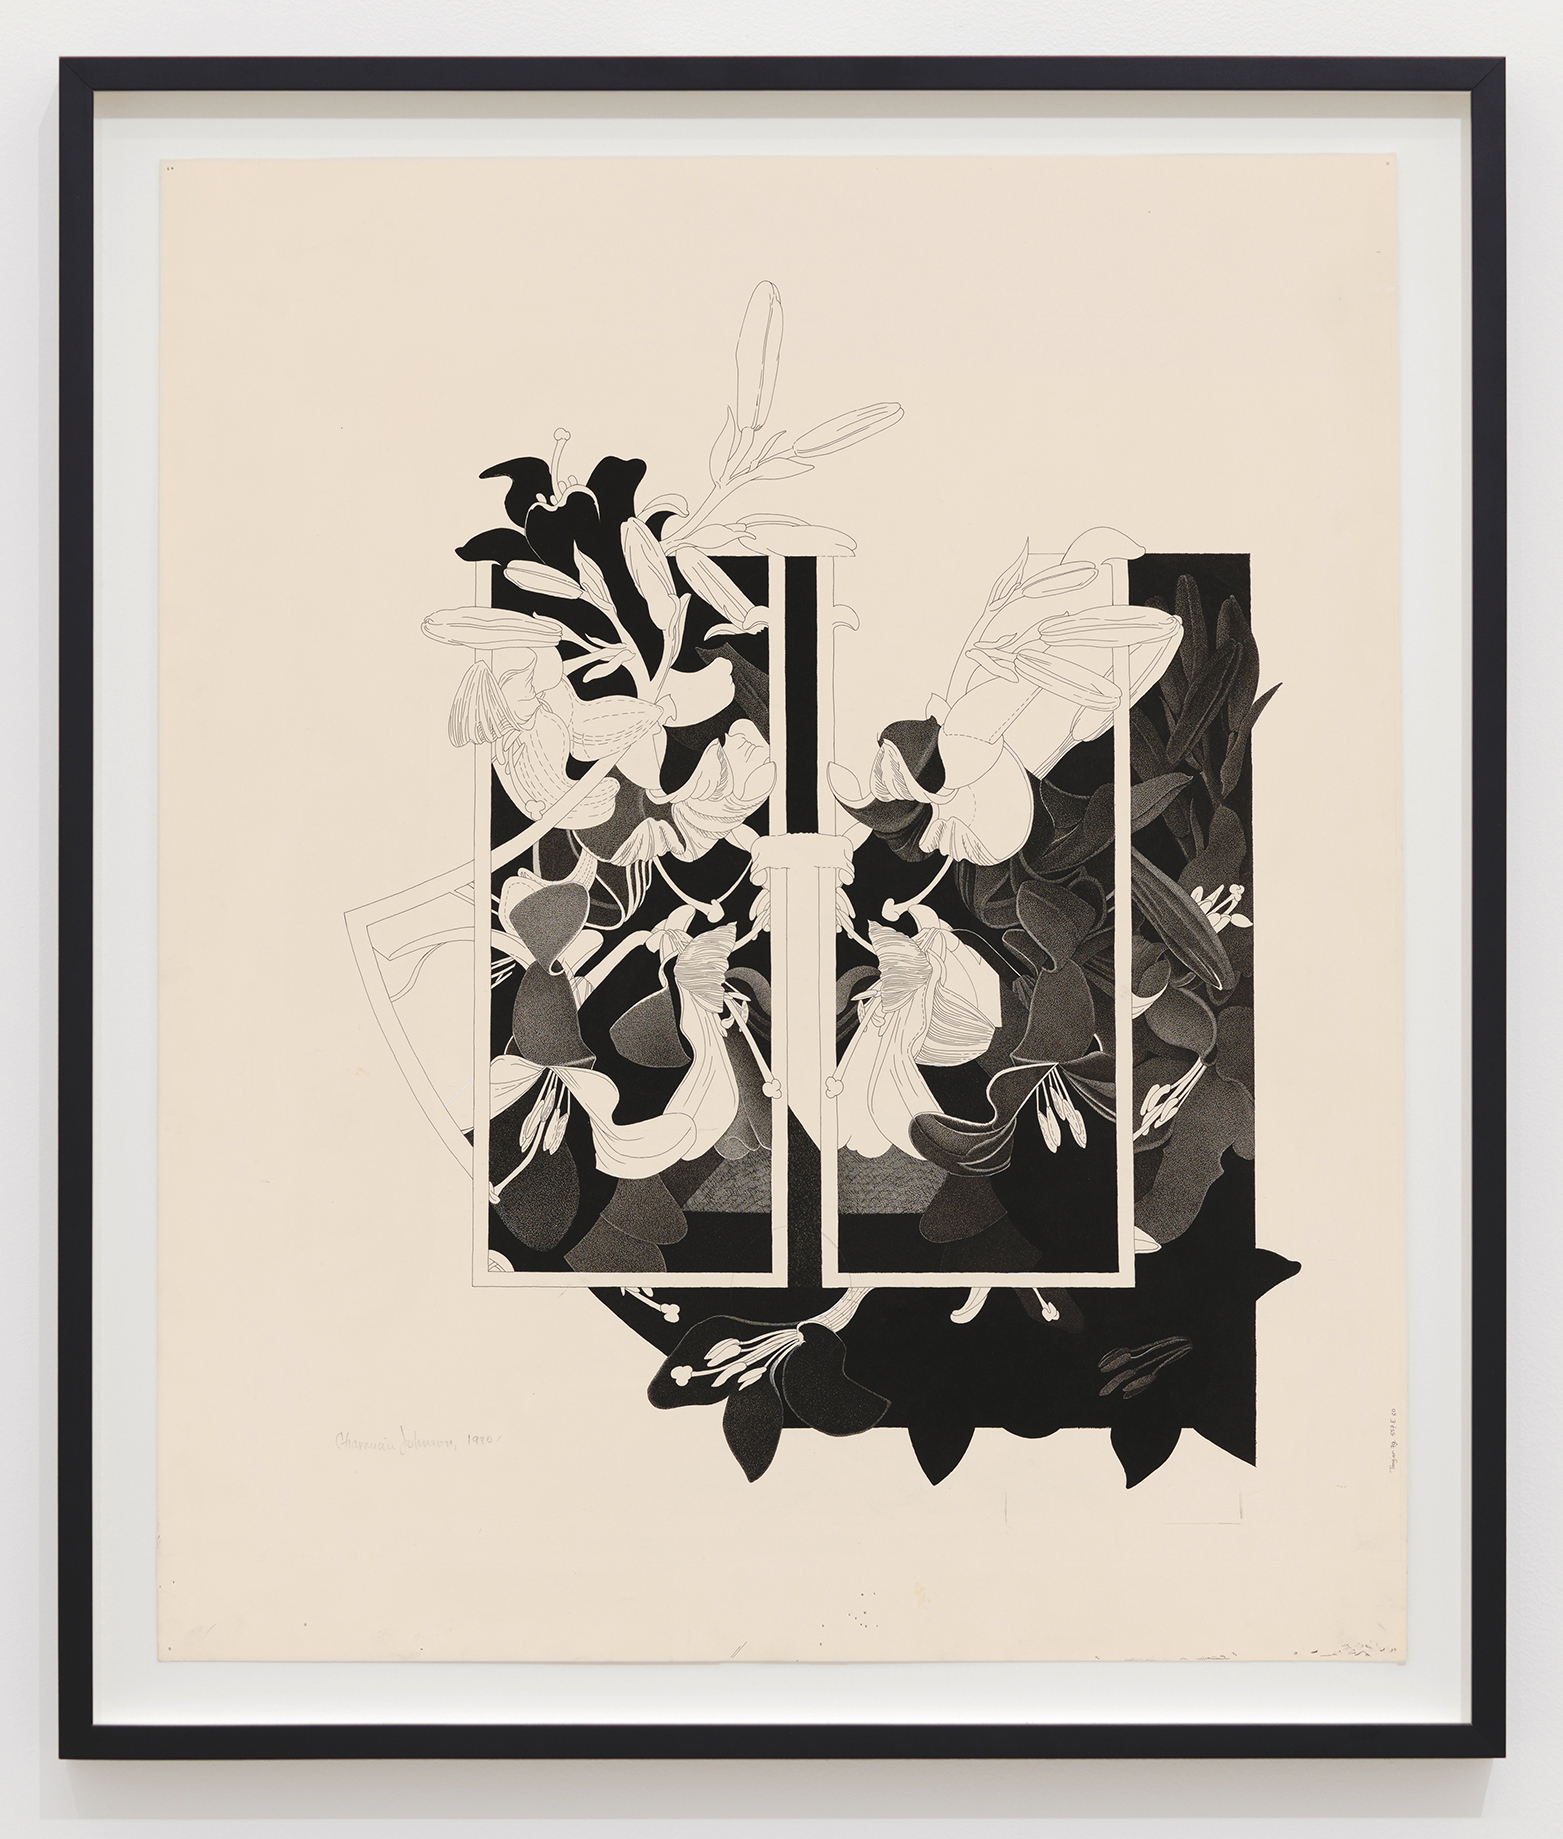 Charmian Johnson, not titled, 1980, ink and graphite on paper, 30 x 26 in. (76 x 65 cm) by